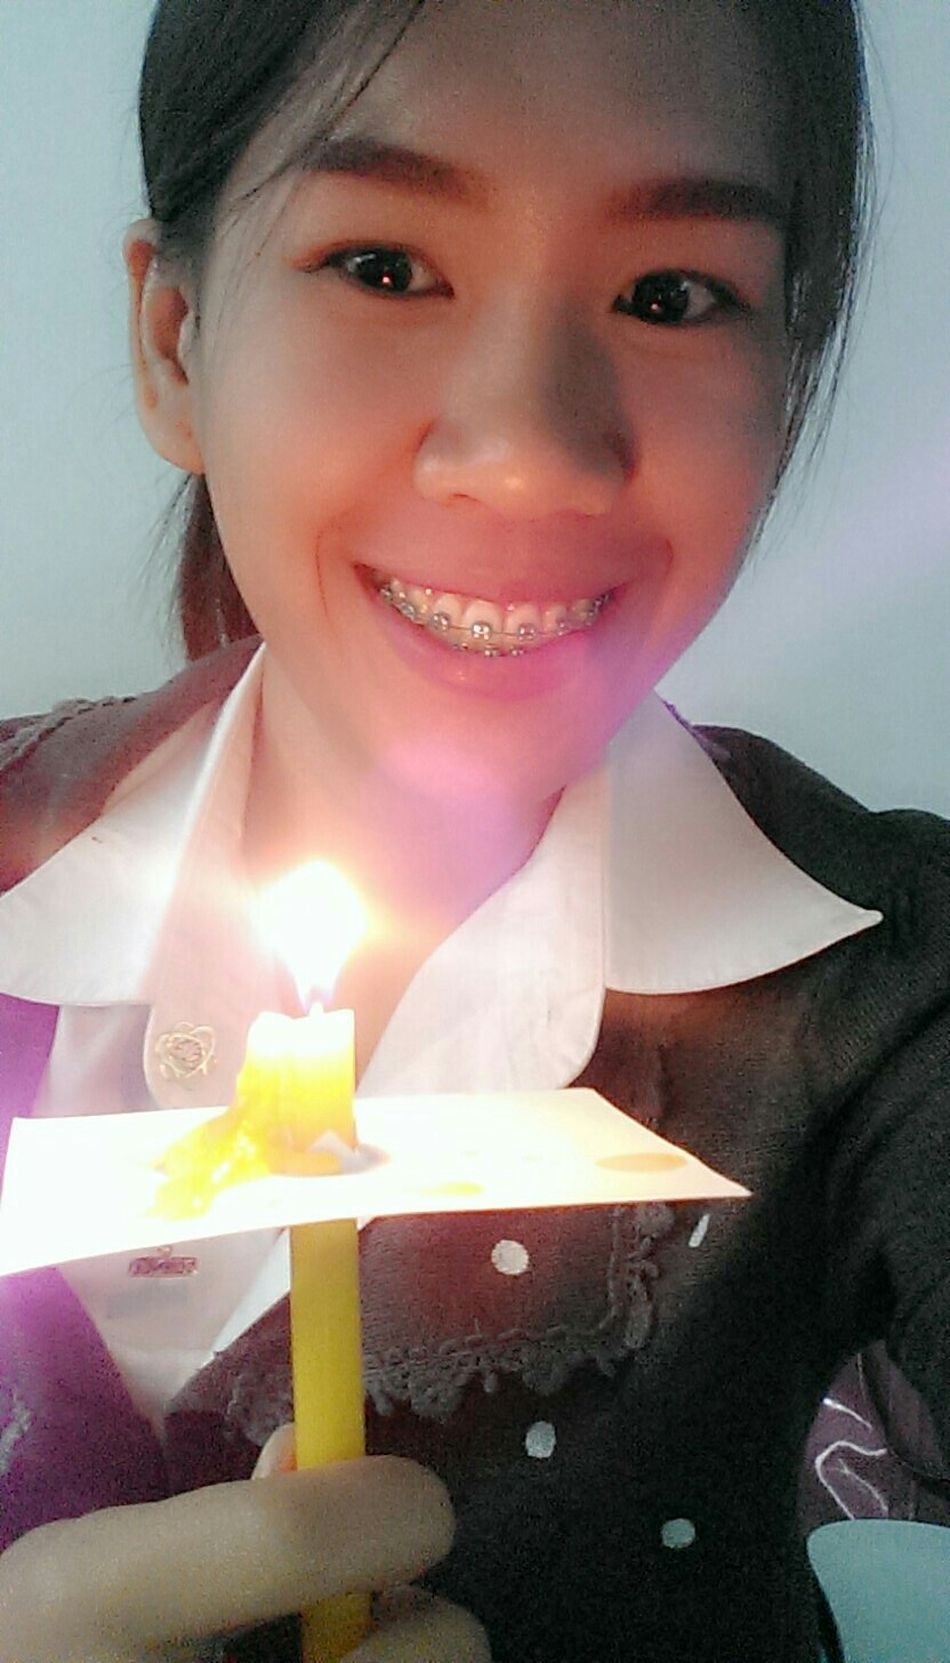 Light your candle englishforscience :)